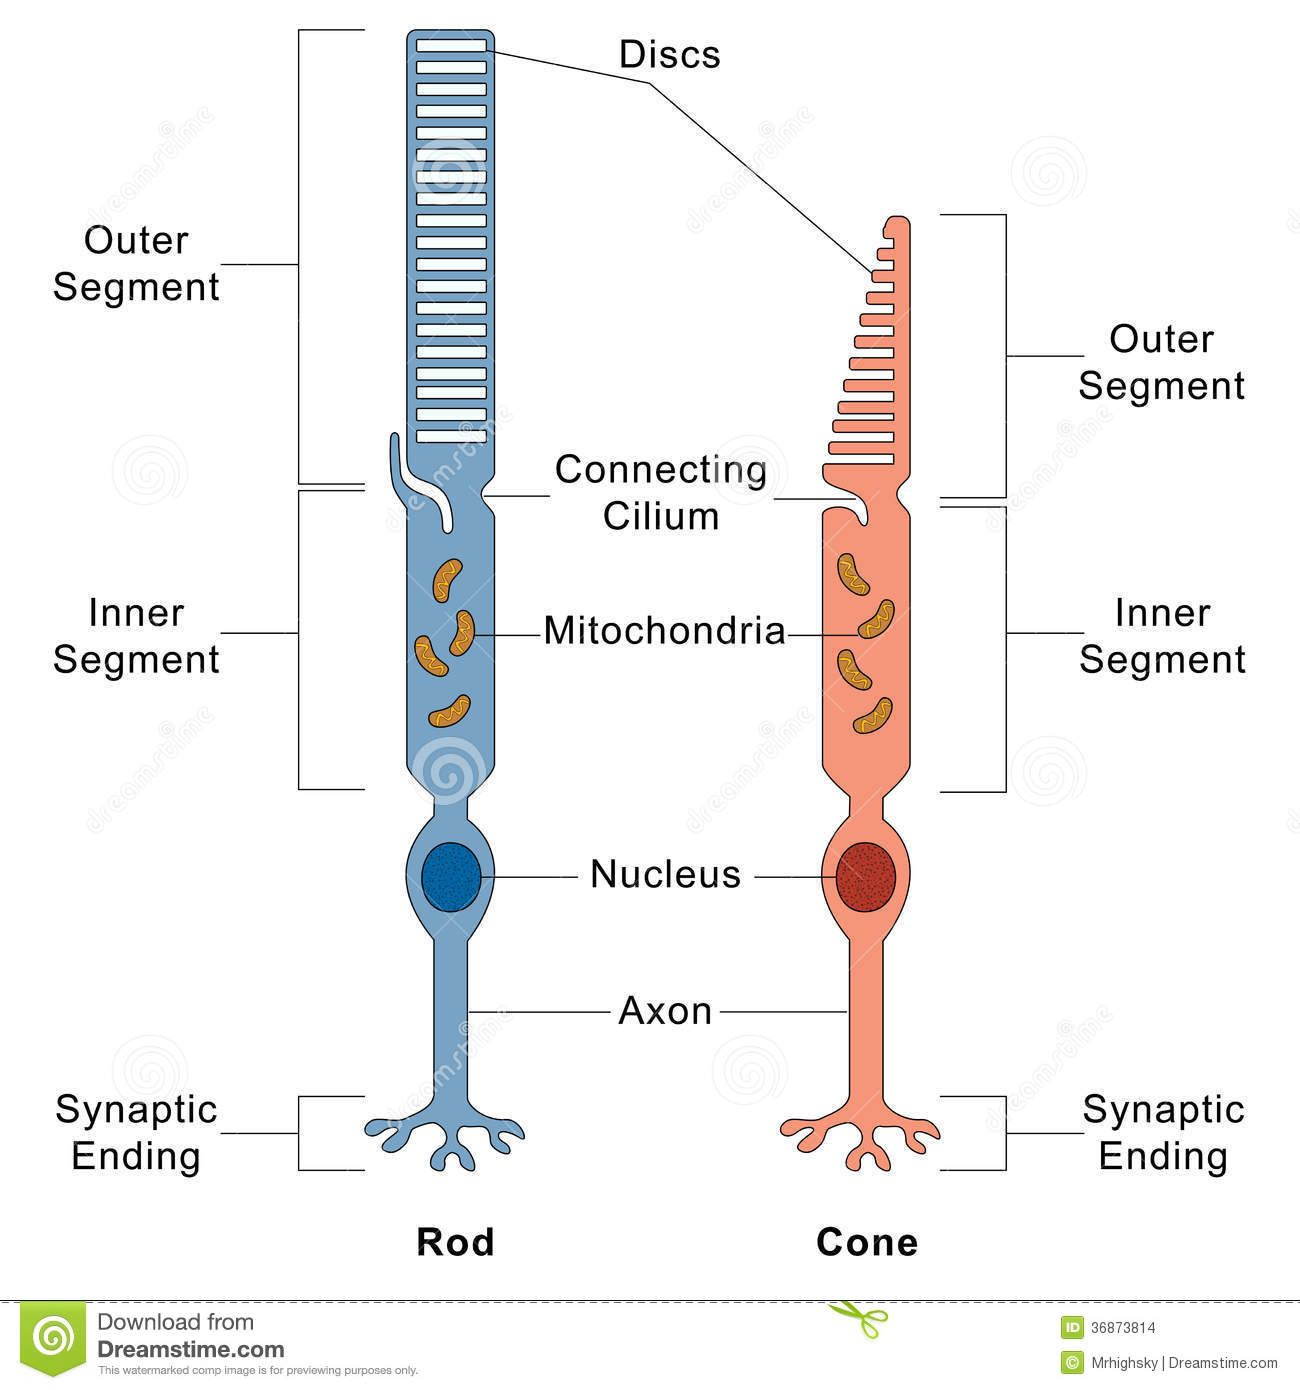 Image result for    rod    and cone cell    diagram      Neuron